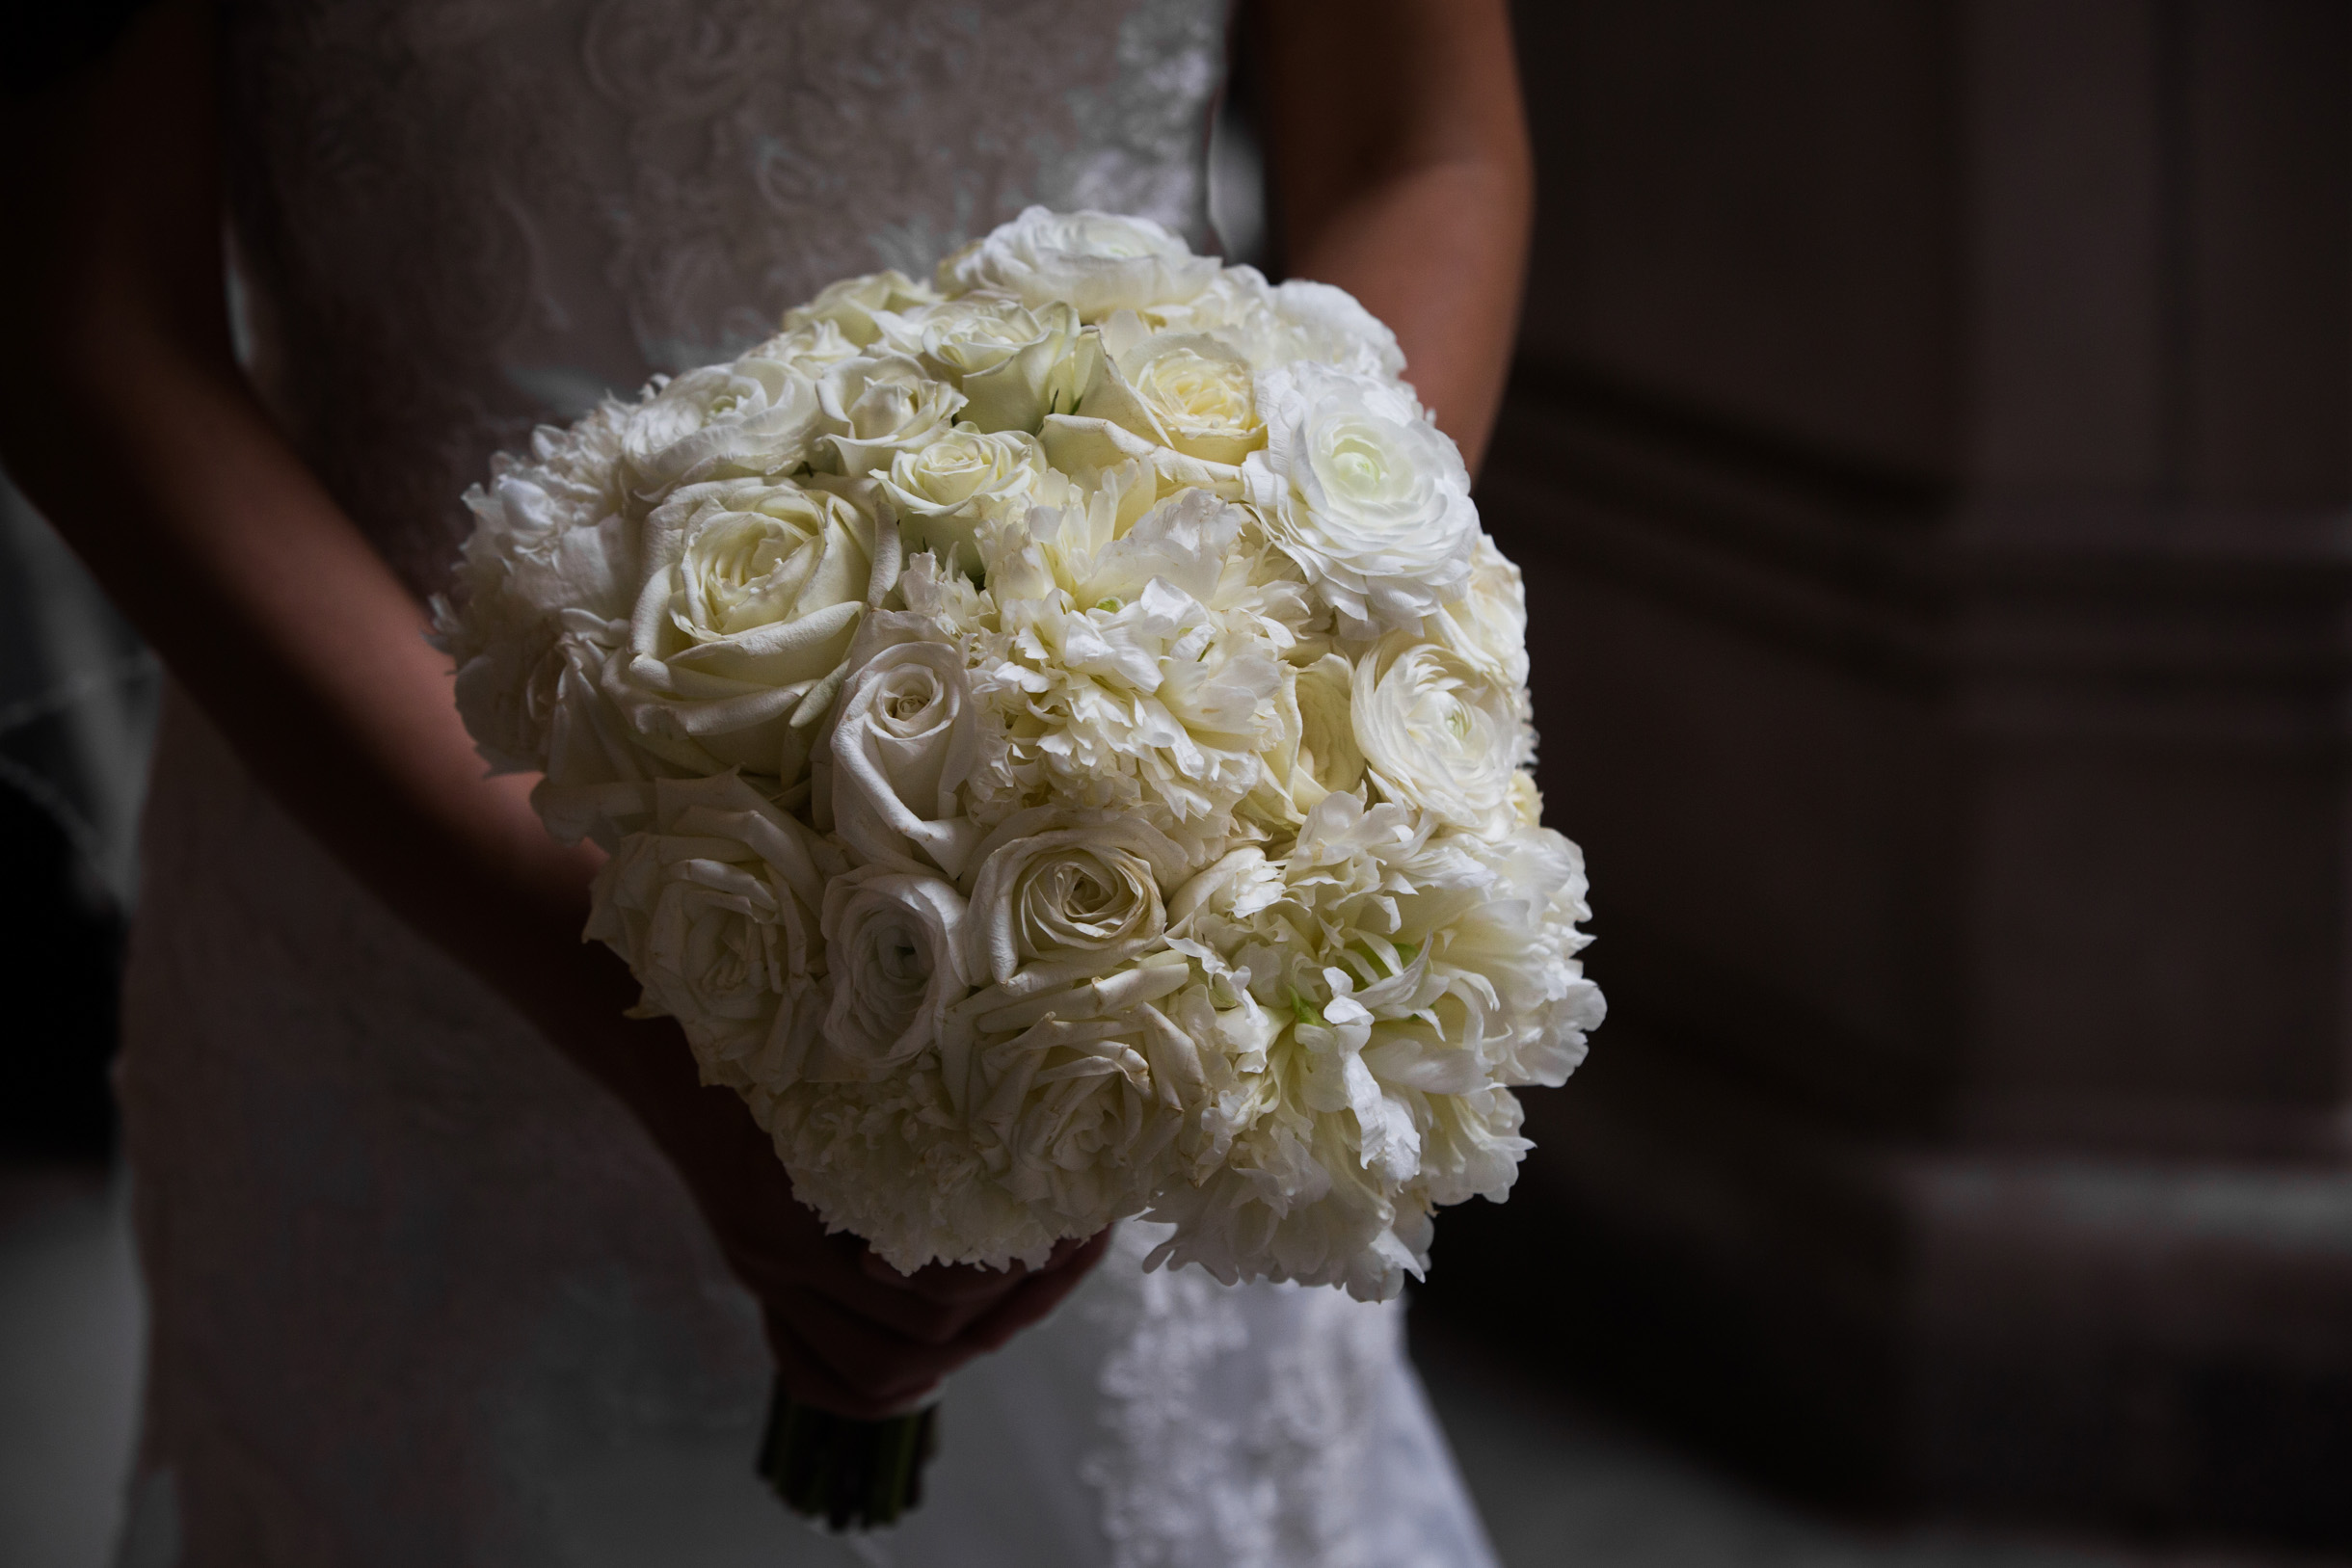 Bride holding white wedding bouquet of flowers and roses on her wedding day